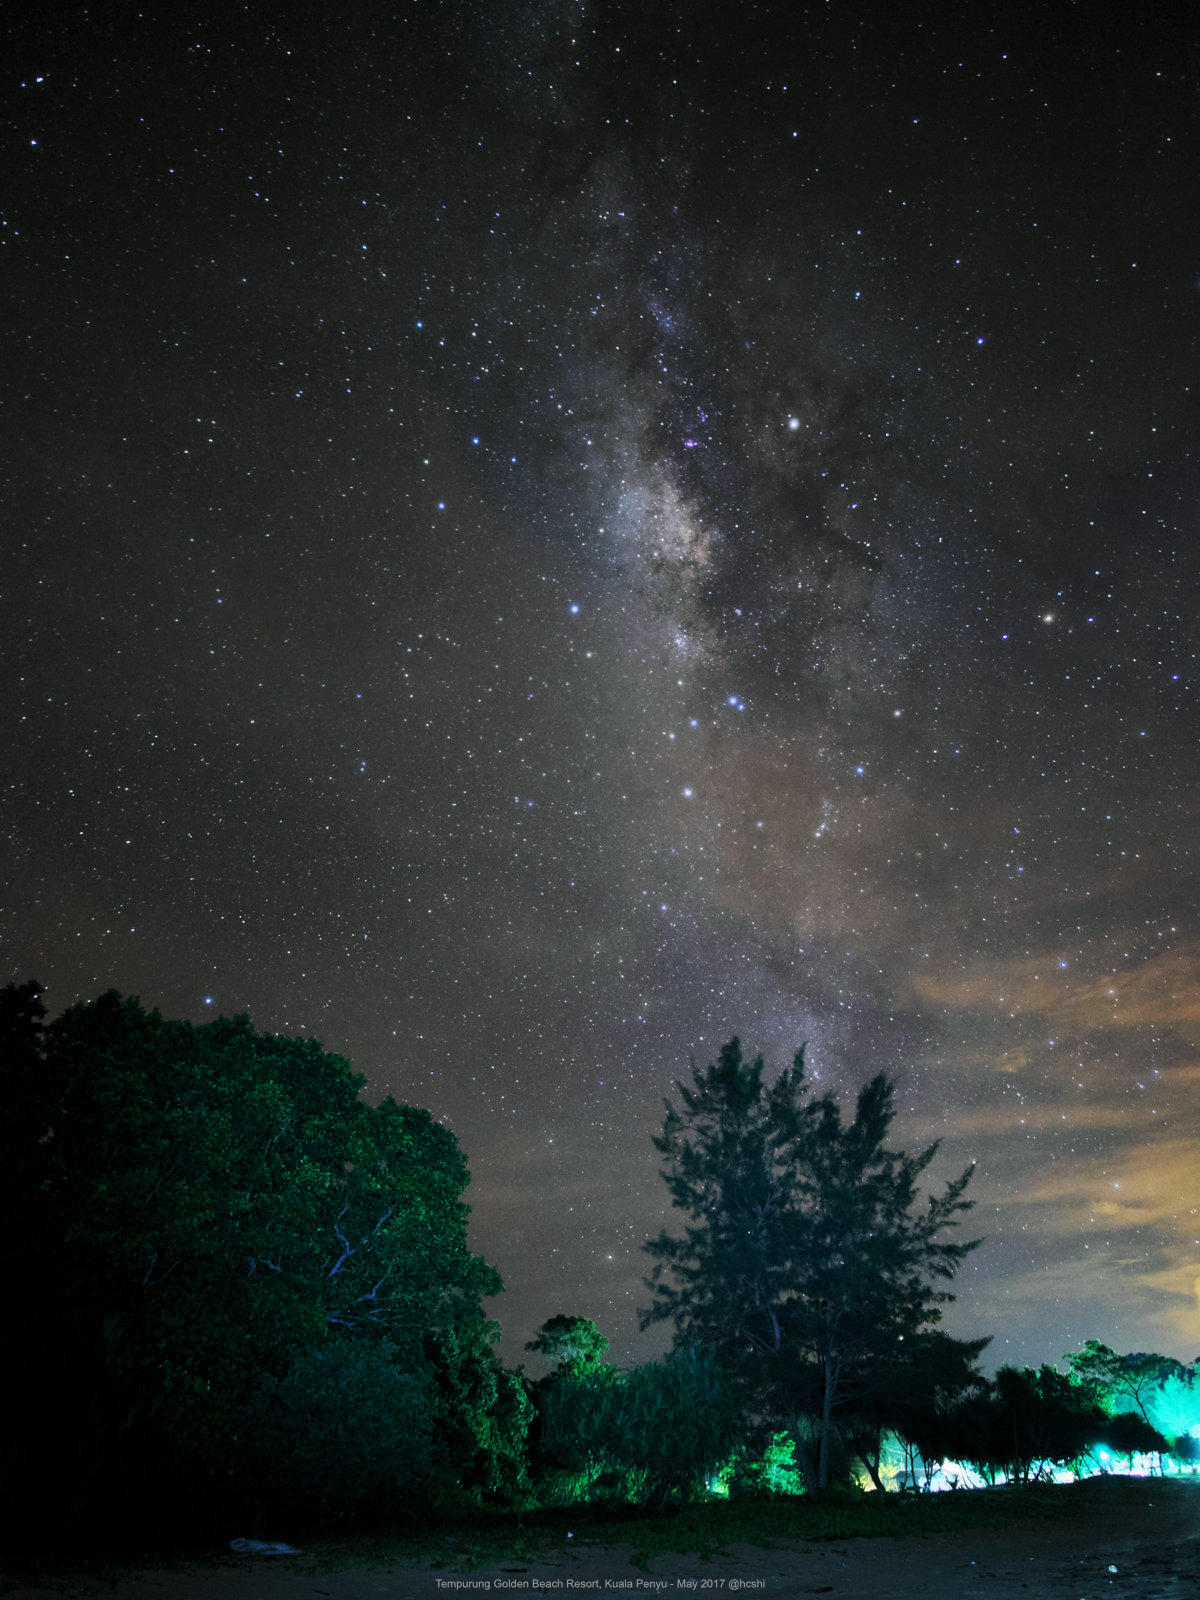 Milky Way at Tempurung Golden Beach Resort